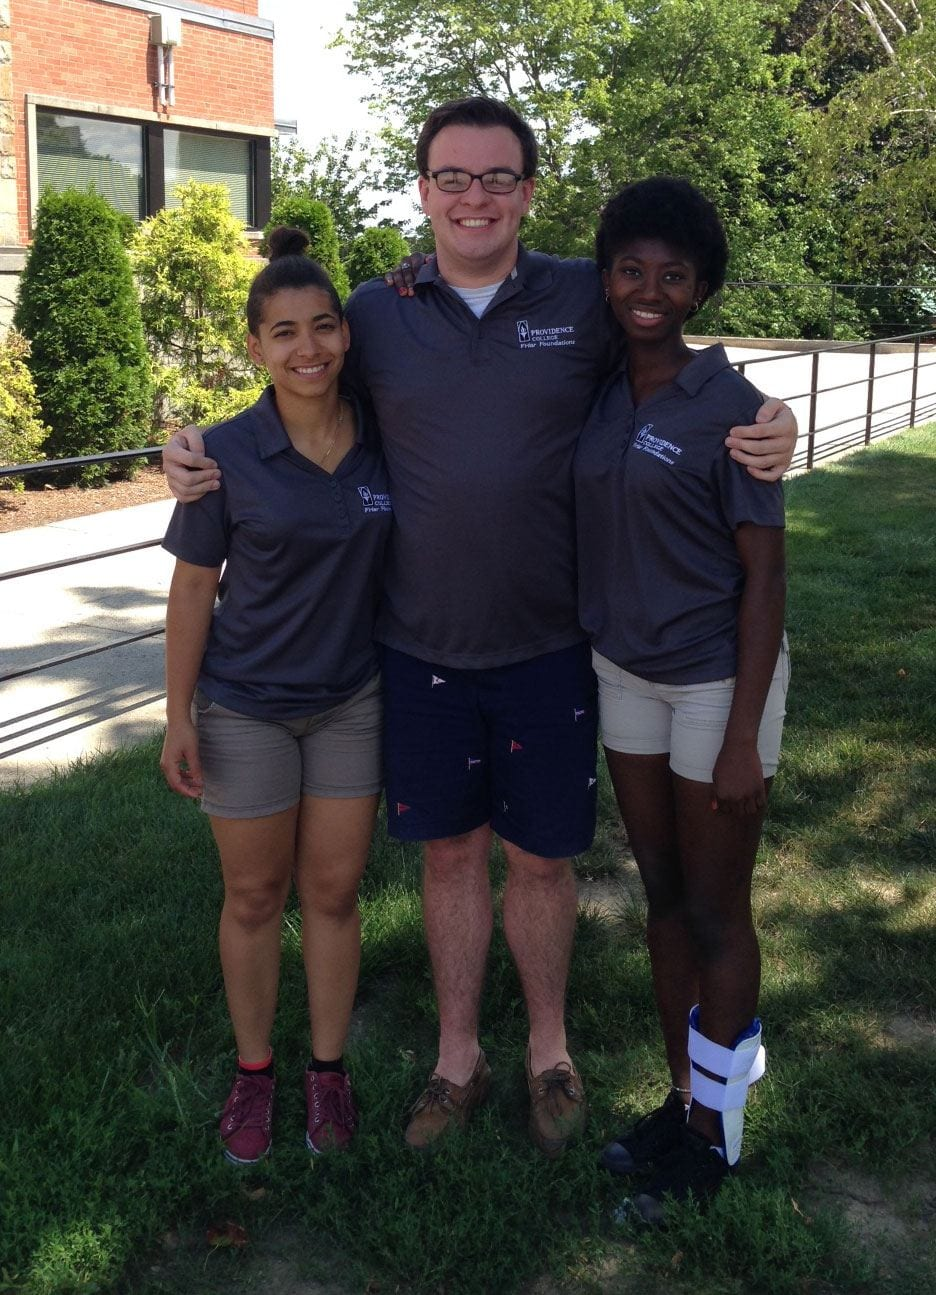 From left, Jarely Paulino Diaz '18, Patrick Rogers '17, and Amie Mbye '18 were Friar Foundations Program mentors in 2016. Paulino and Mbye were part of the program's first class.